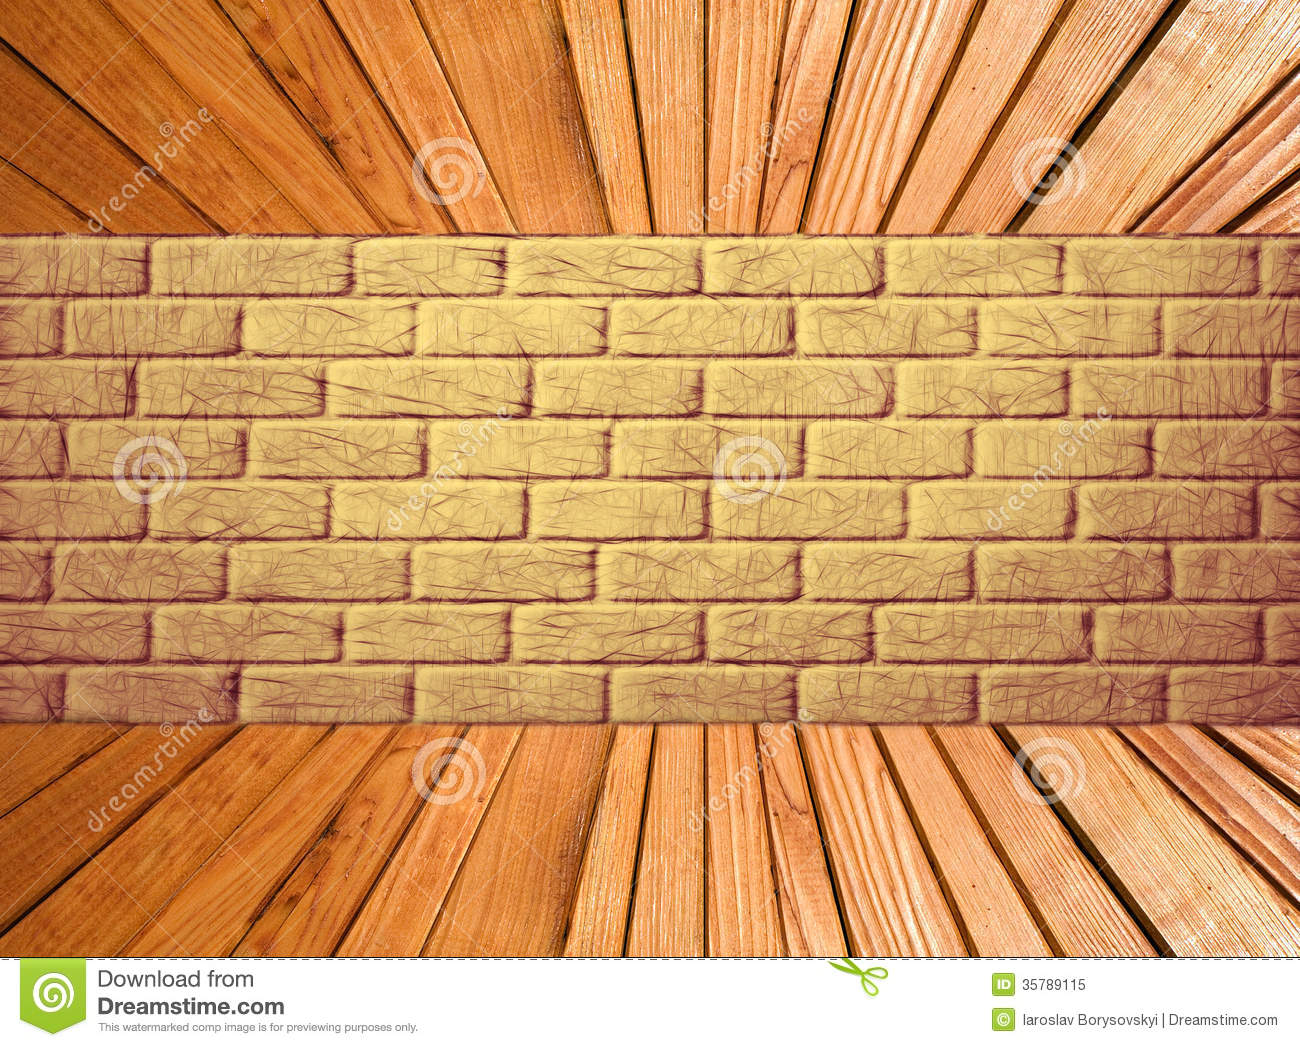 Yellow Brick Wall And Wooden Plank Floor Perspective. Stock ...